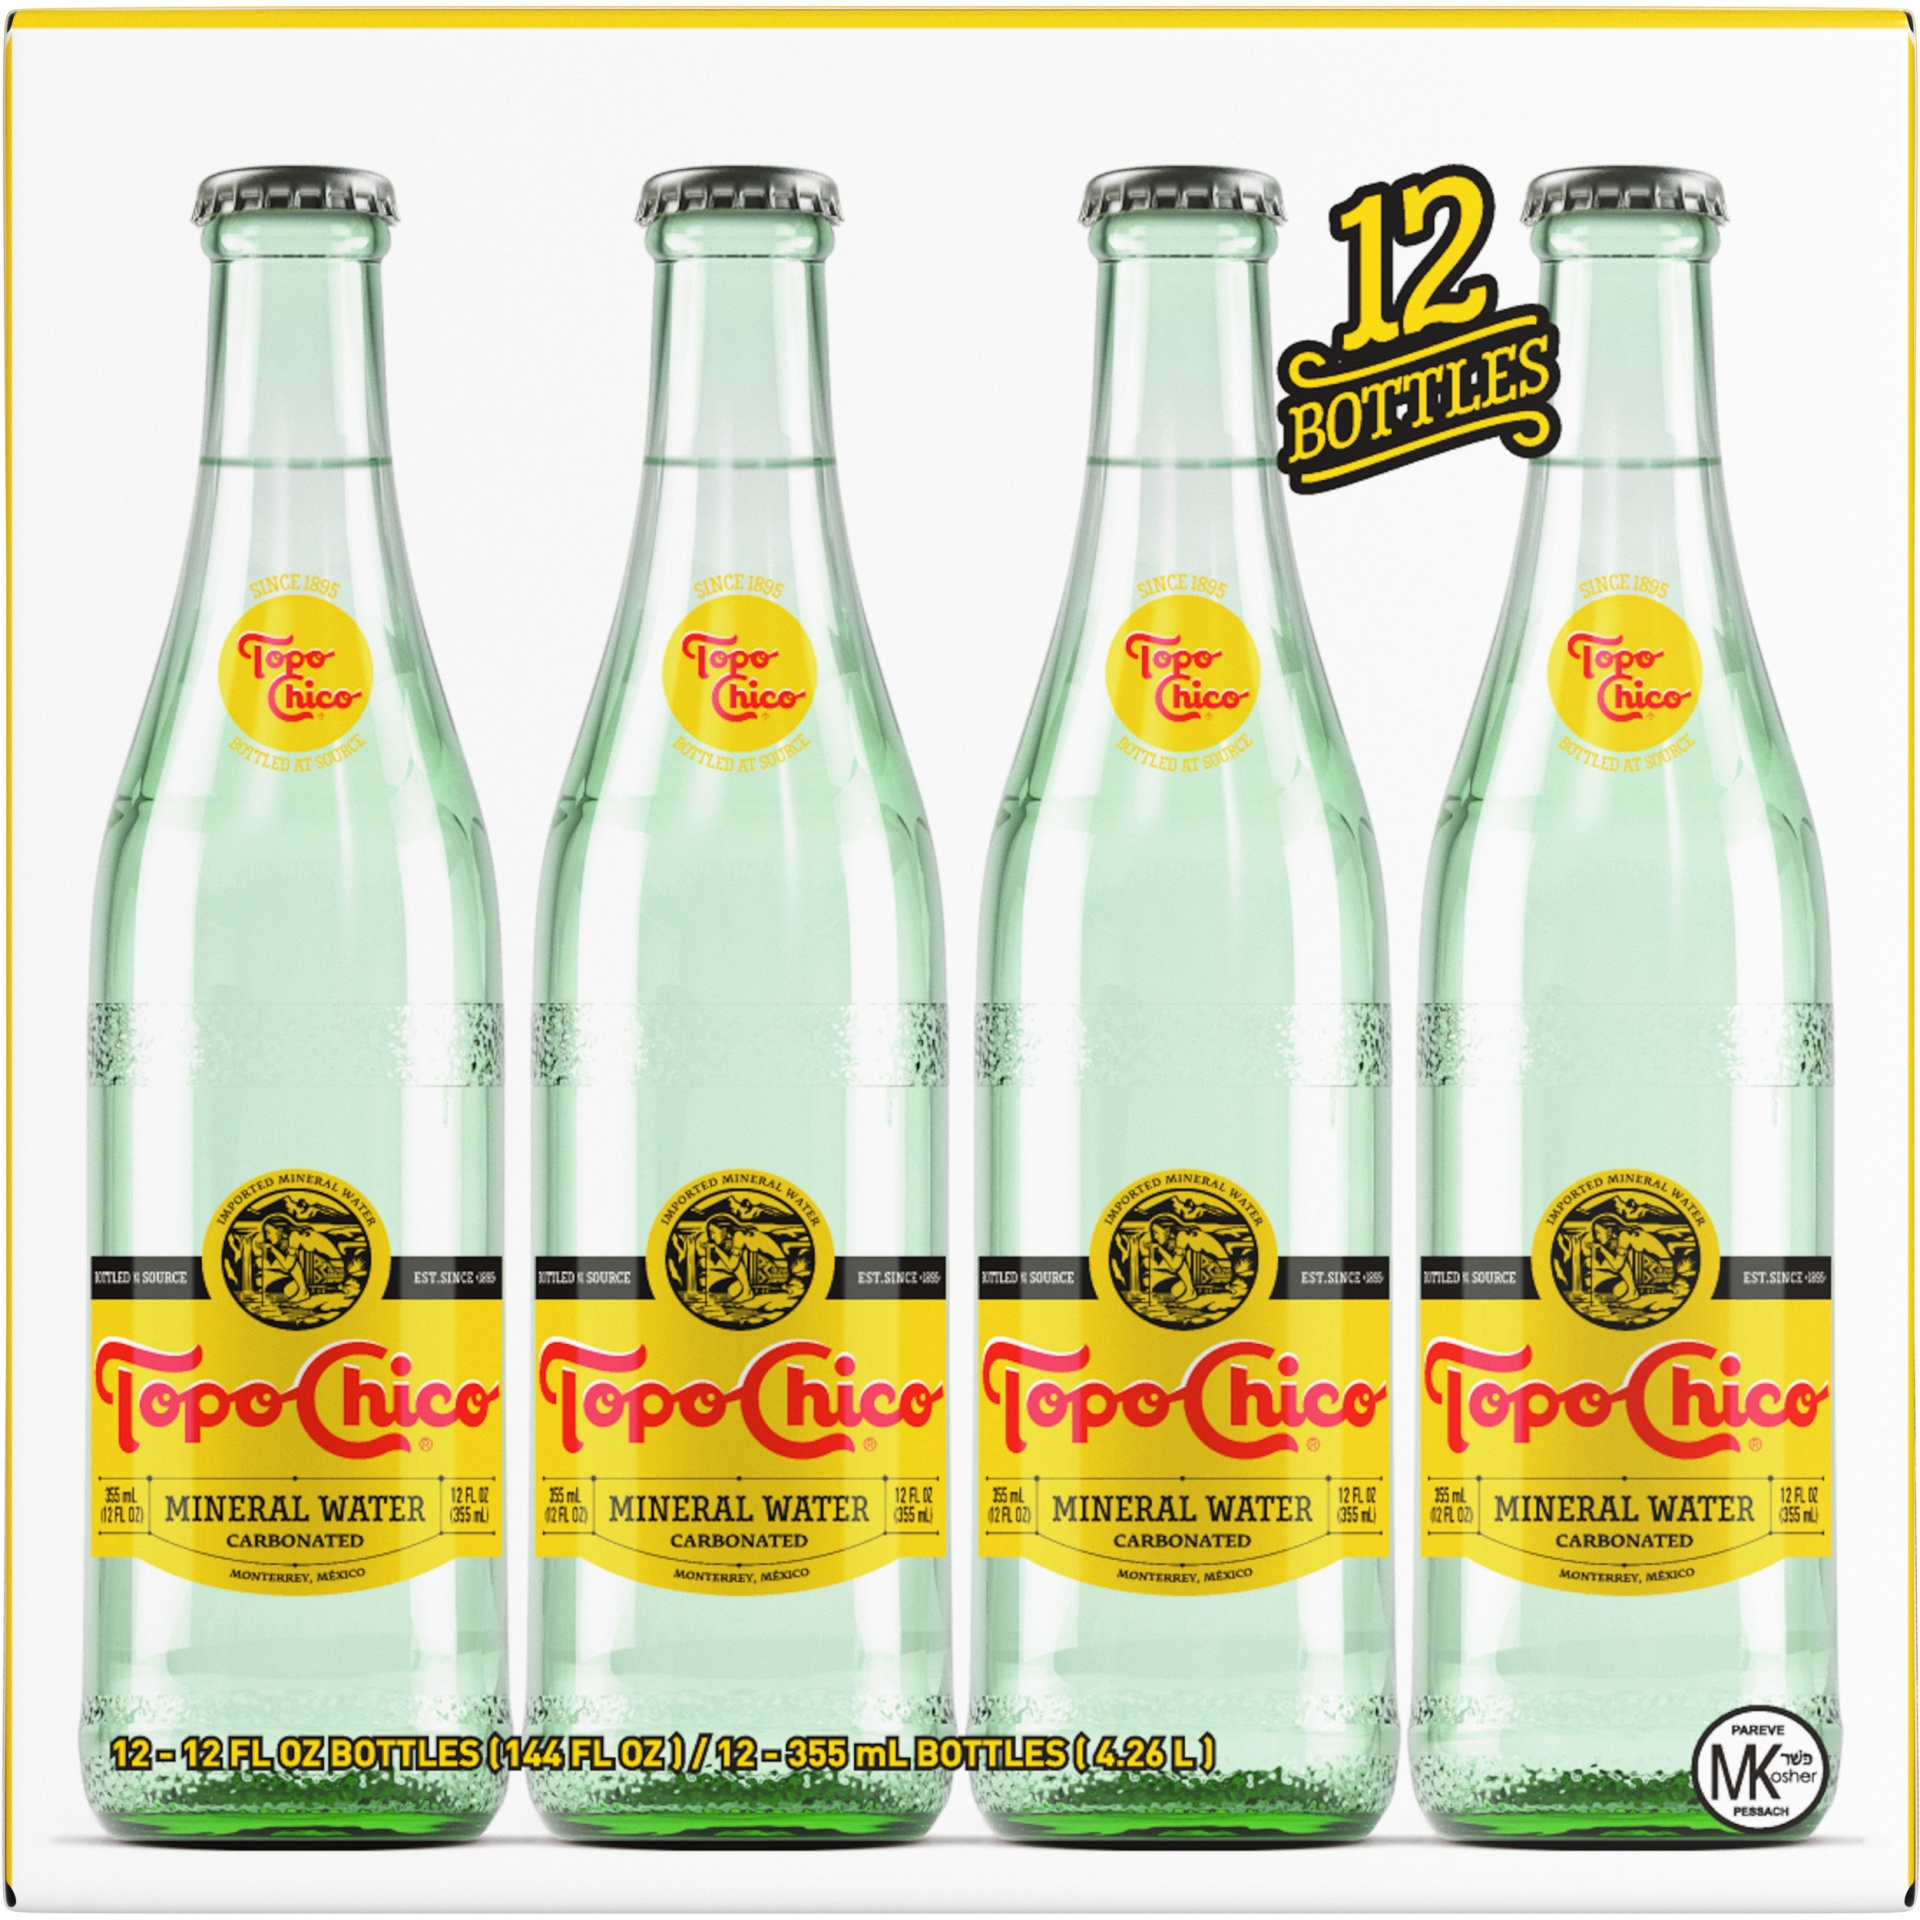 slide 3 of 7, Topo Chico Mineral Water,